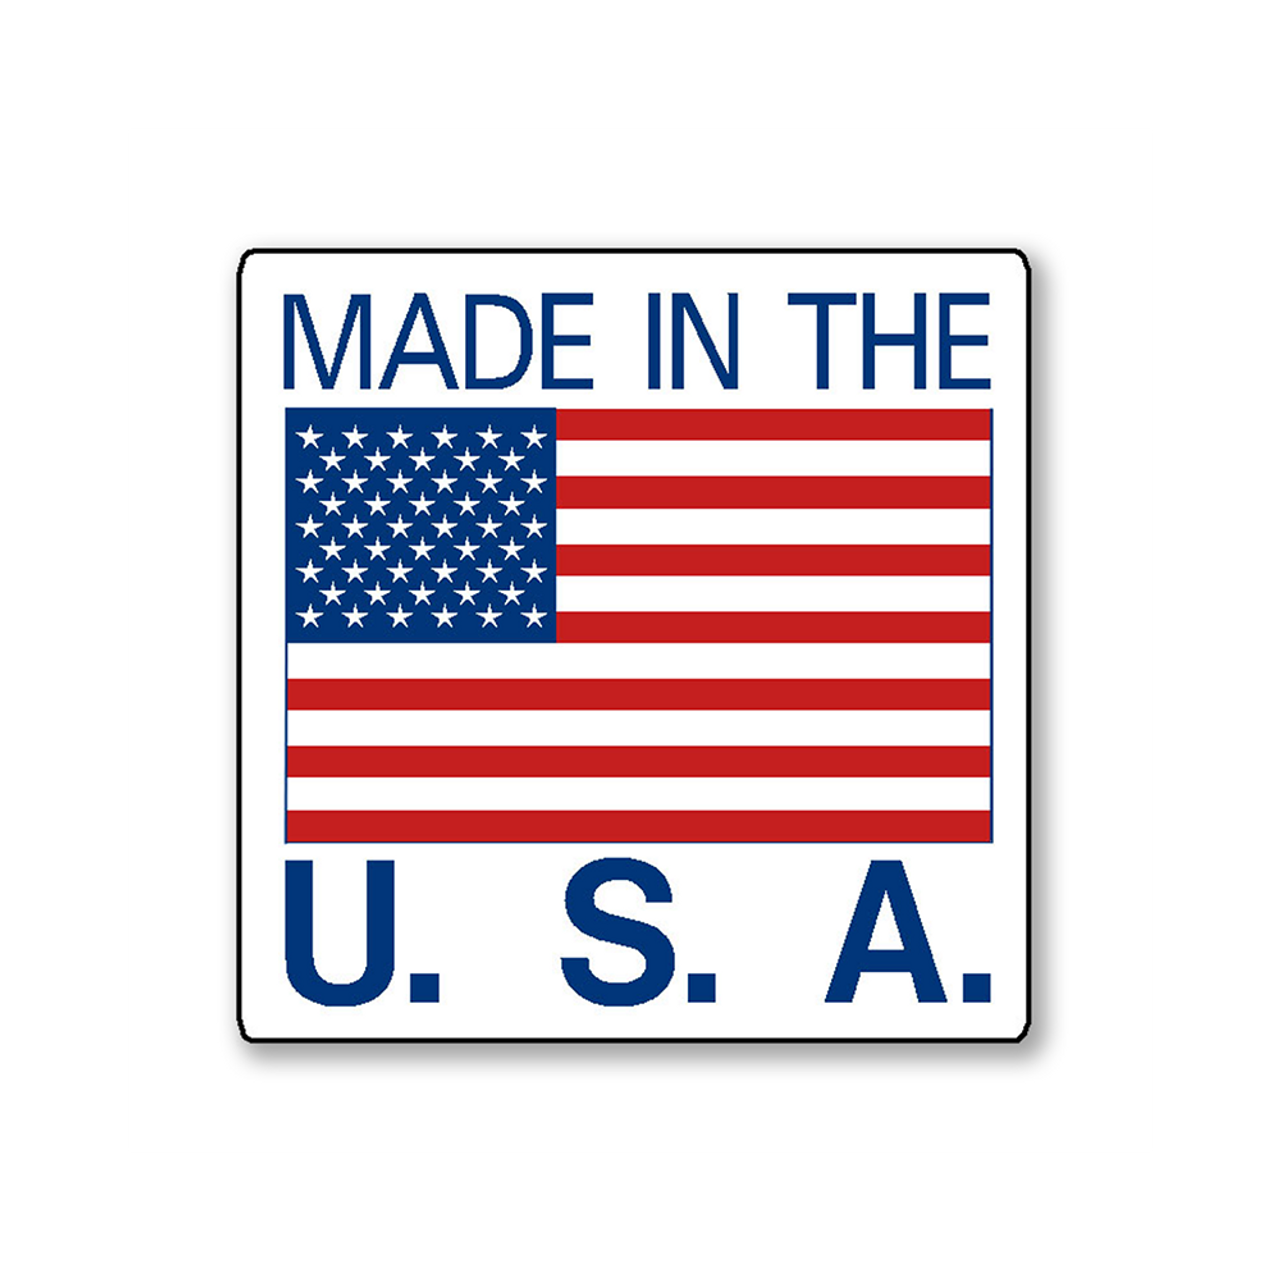 Made in USA Stickers 500 pcs per roll